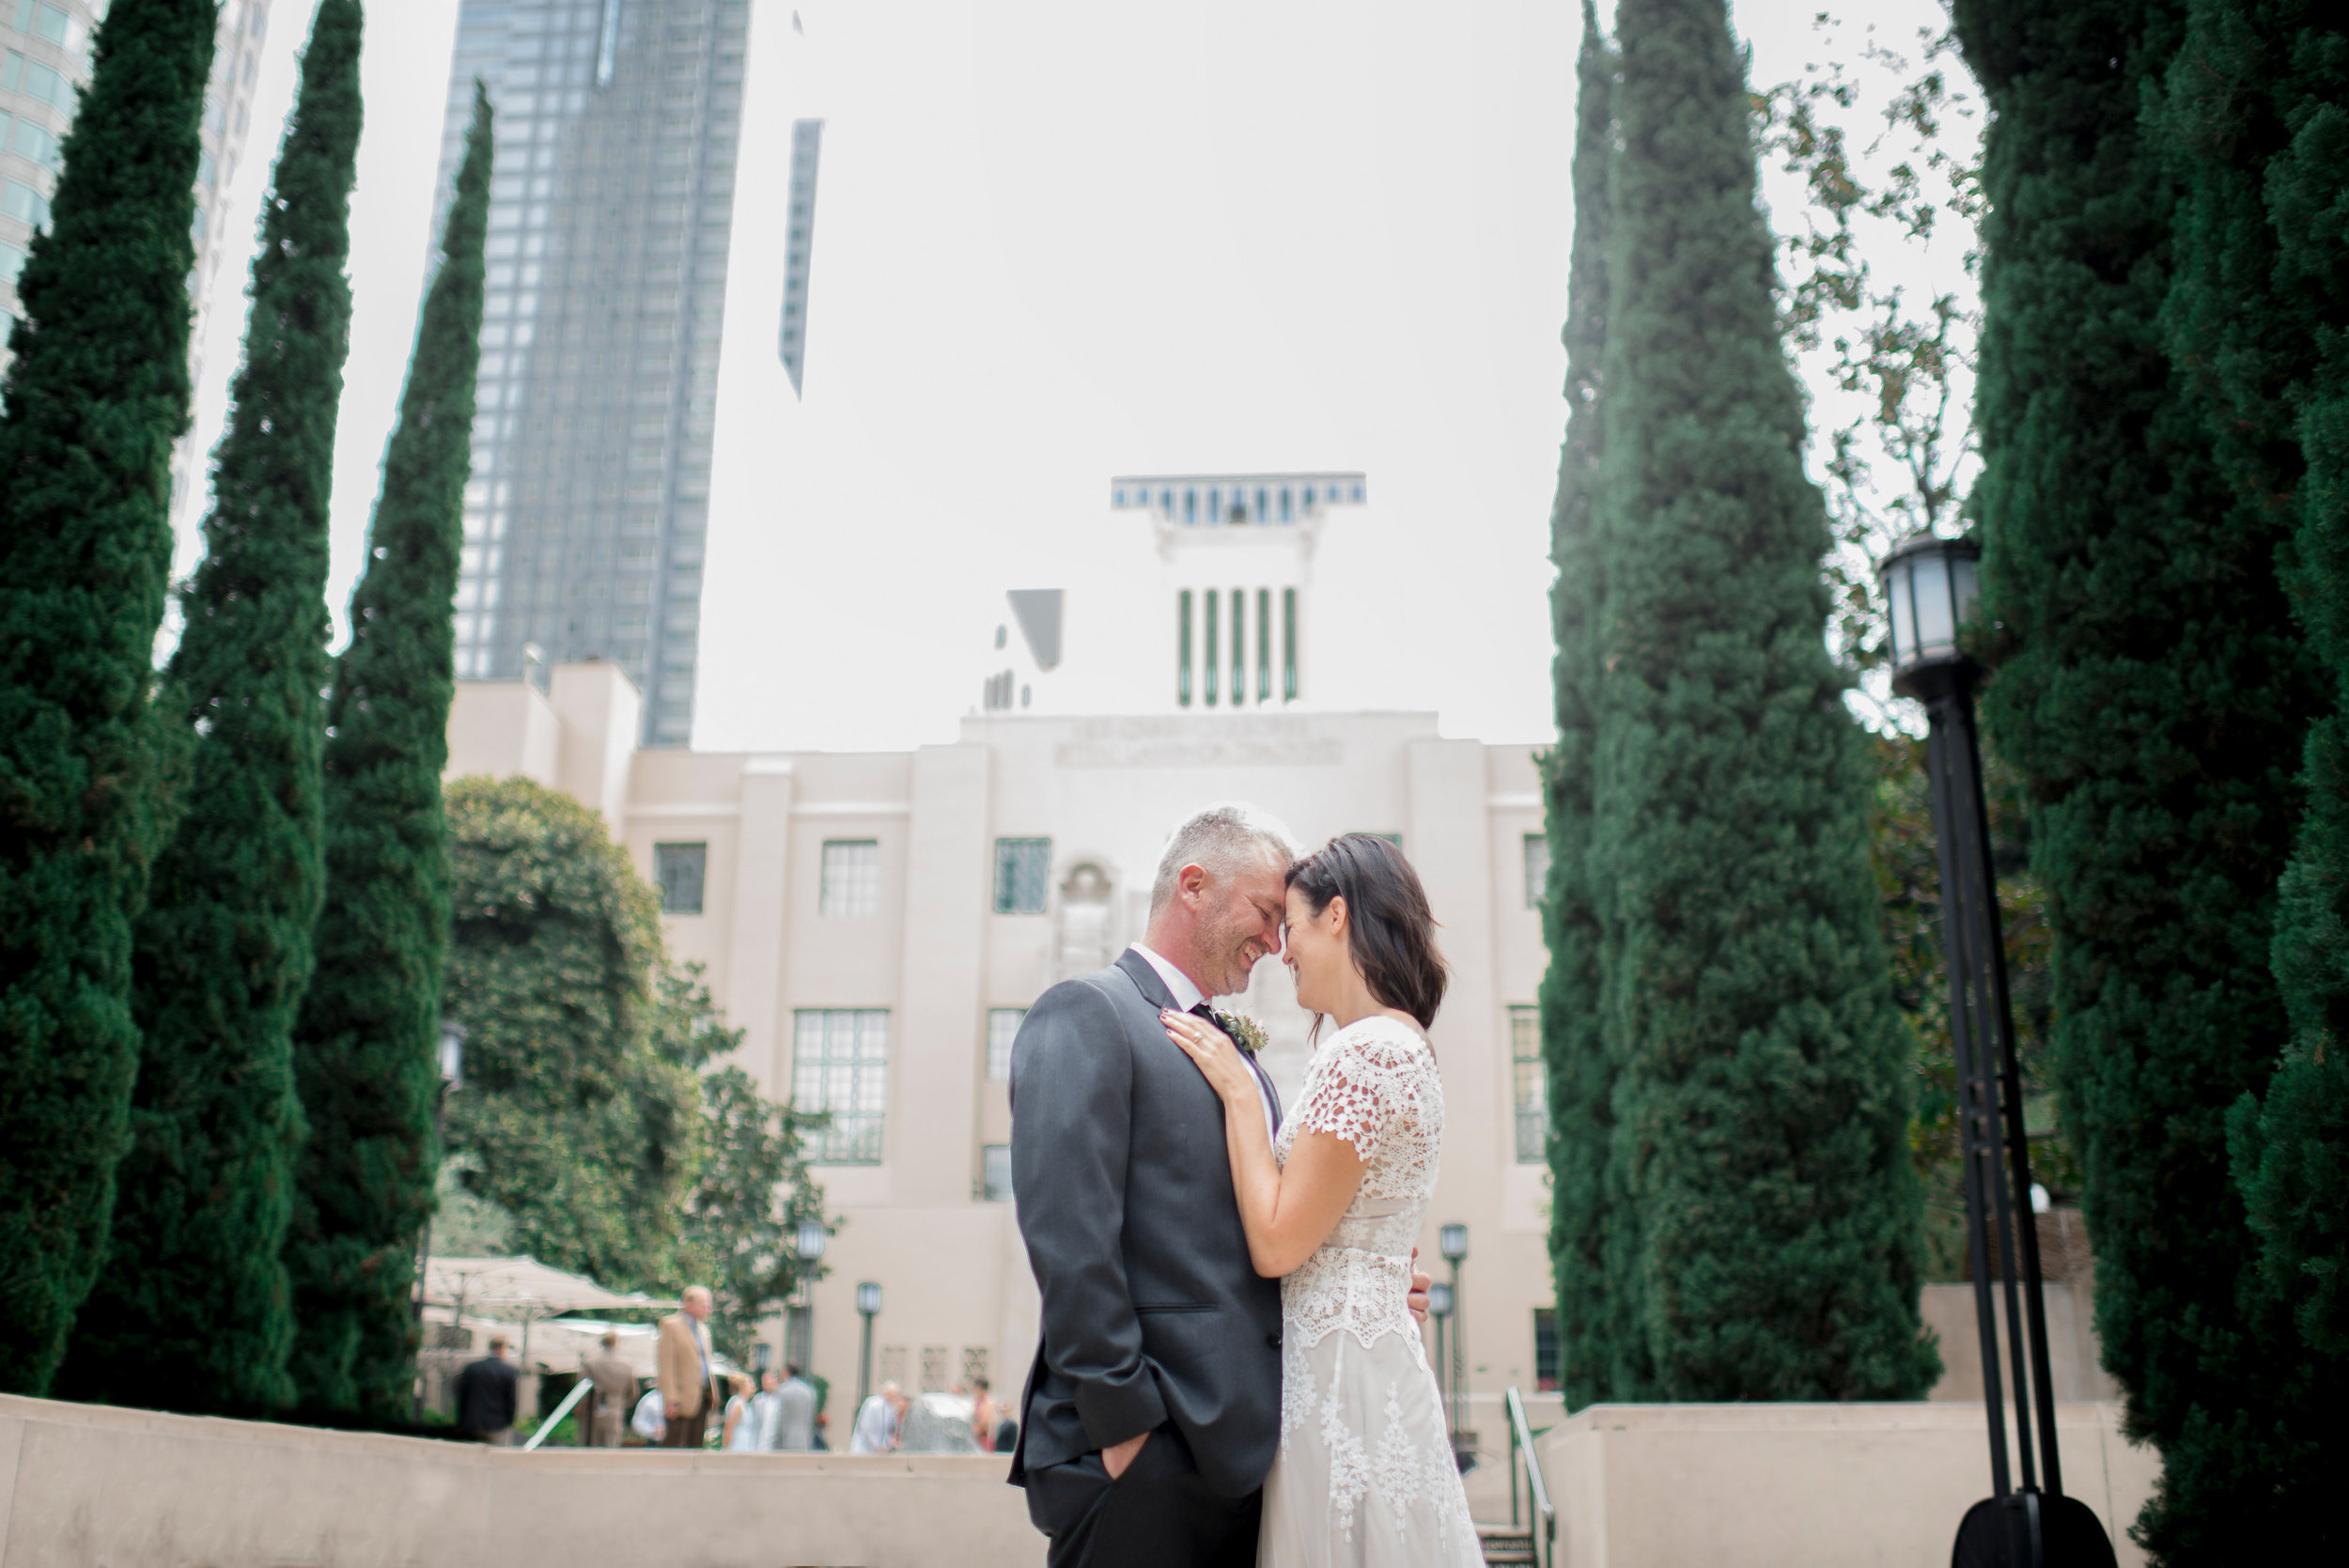 socal-wedding-consultant-best-wedding-planners-in-southern-california-cafe-pinot-wedding-planner125.jpg